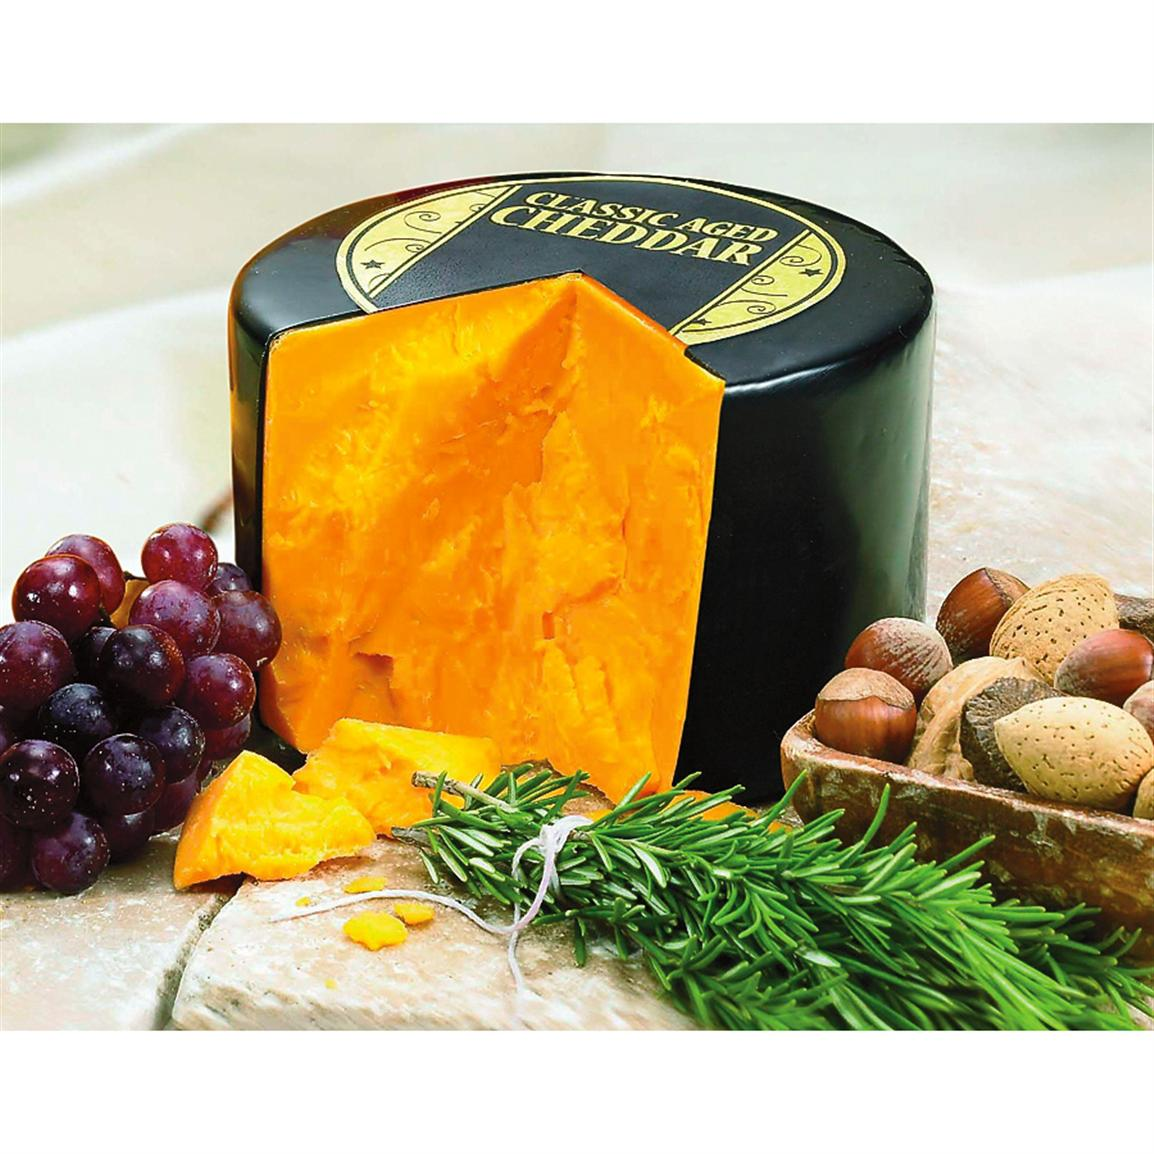 Wisconsin Classic Aged Cheddar Cheese